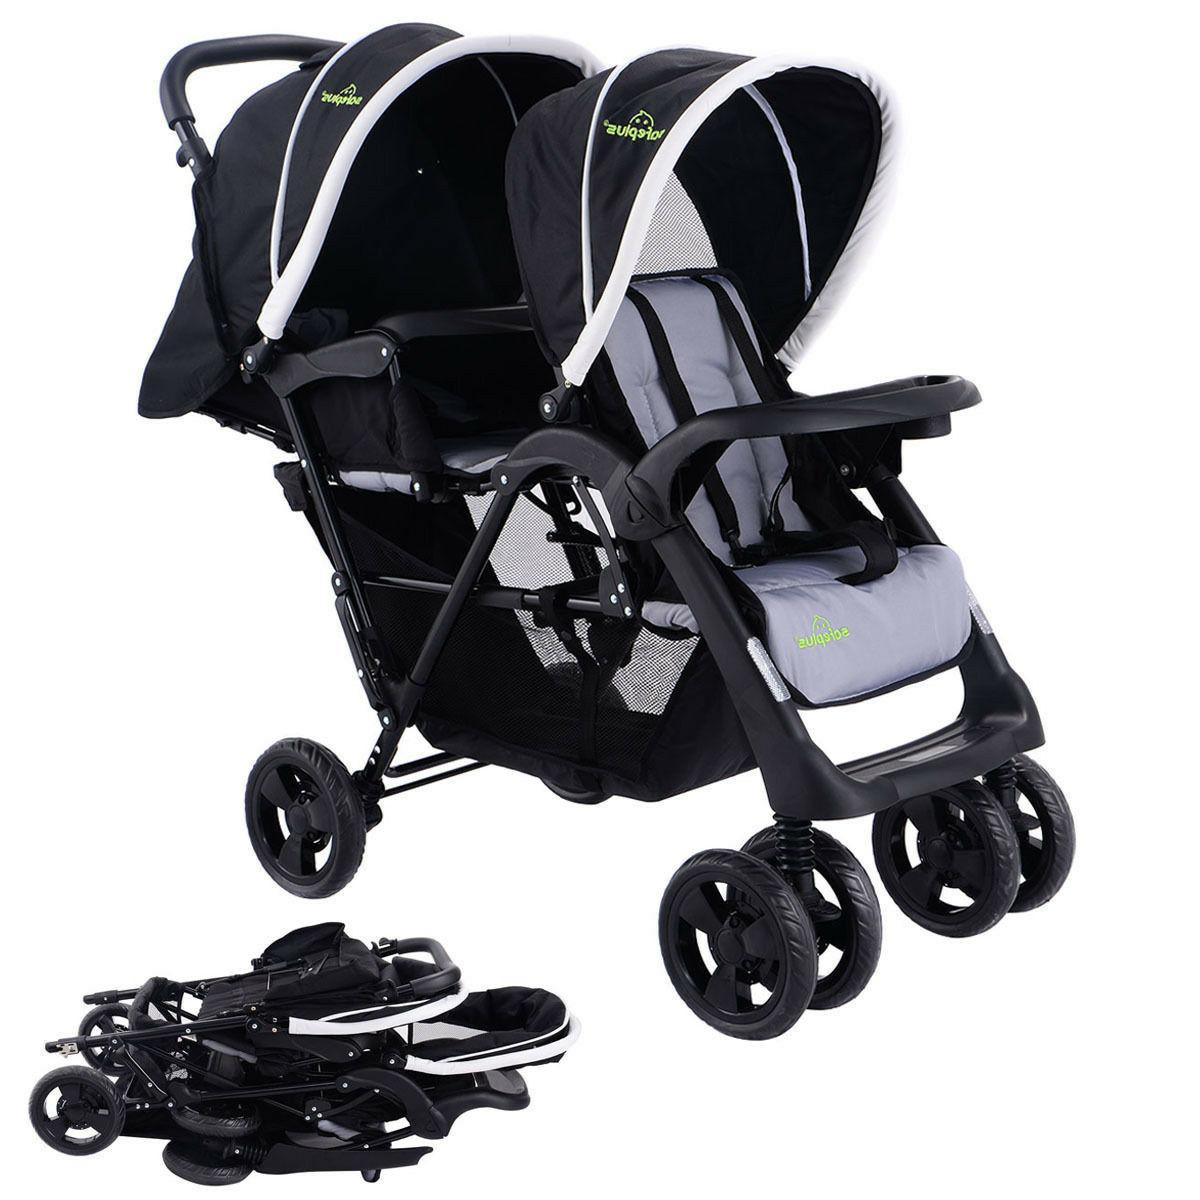 Costway Twin Double Stroller Jogger Travel